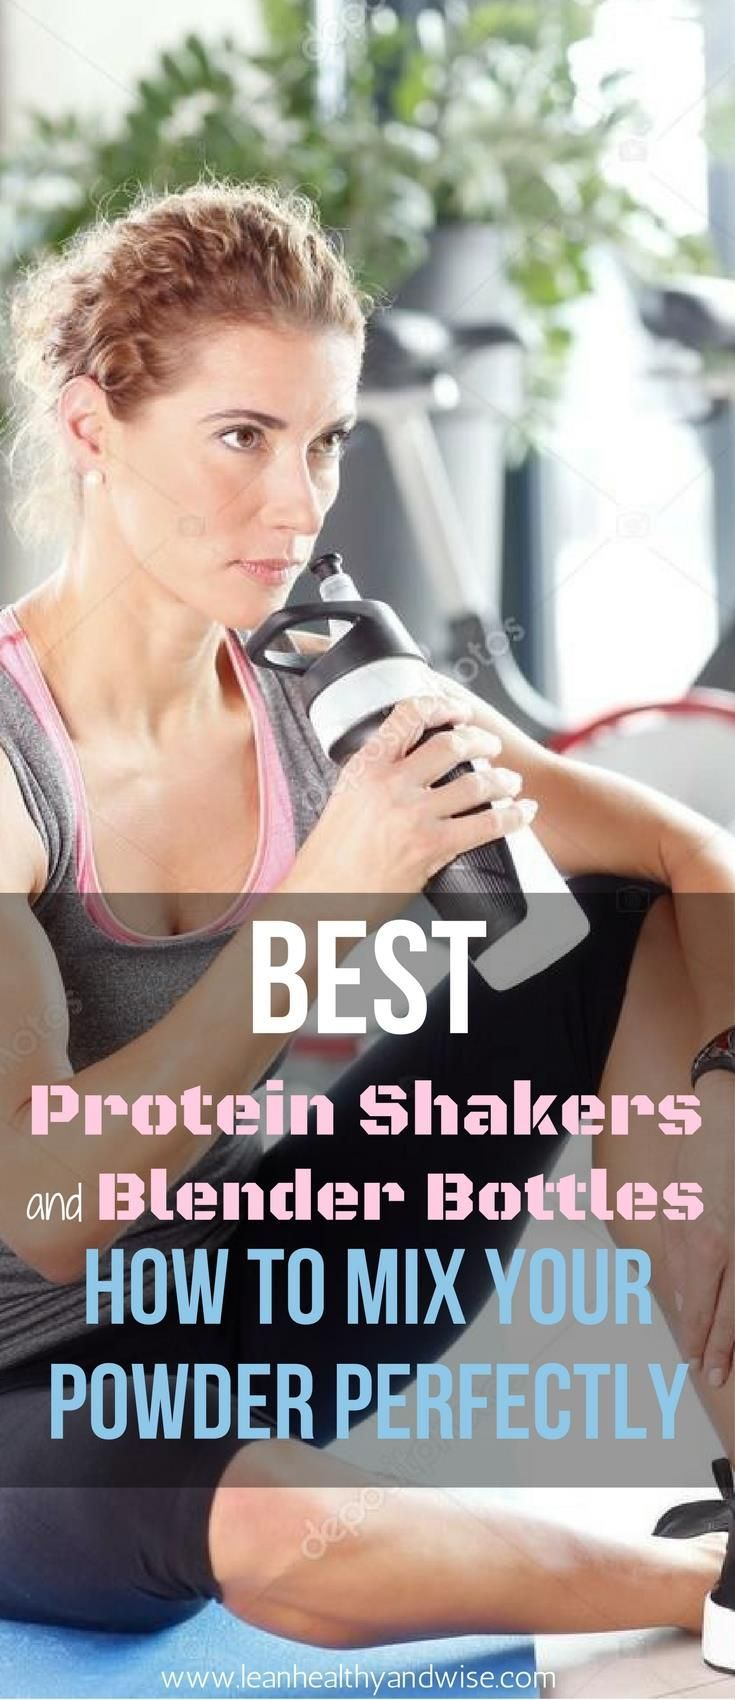 Thinking about getting a new protein shaker or blender bottle? This detailed review guide will show you how to select the best shake mixer cup for your needs. via @leanhealthywise